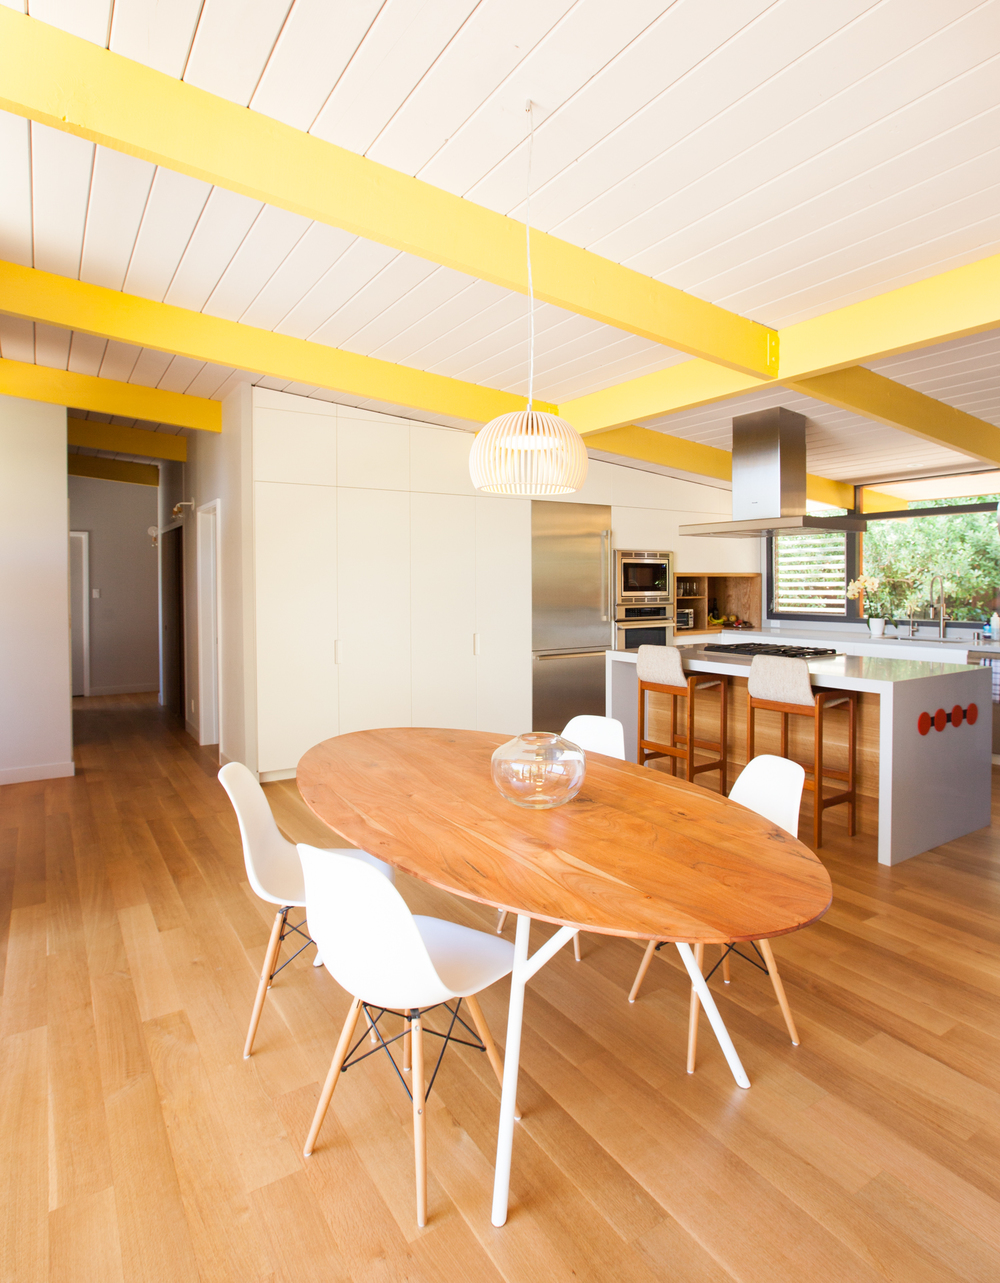 dining table and lighting fixture // Sunset House by Sky Lanigan for Medium Plenty